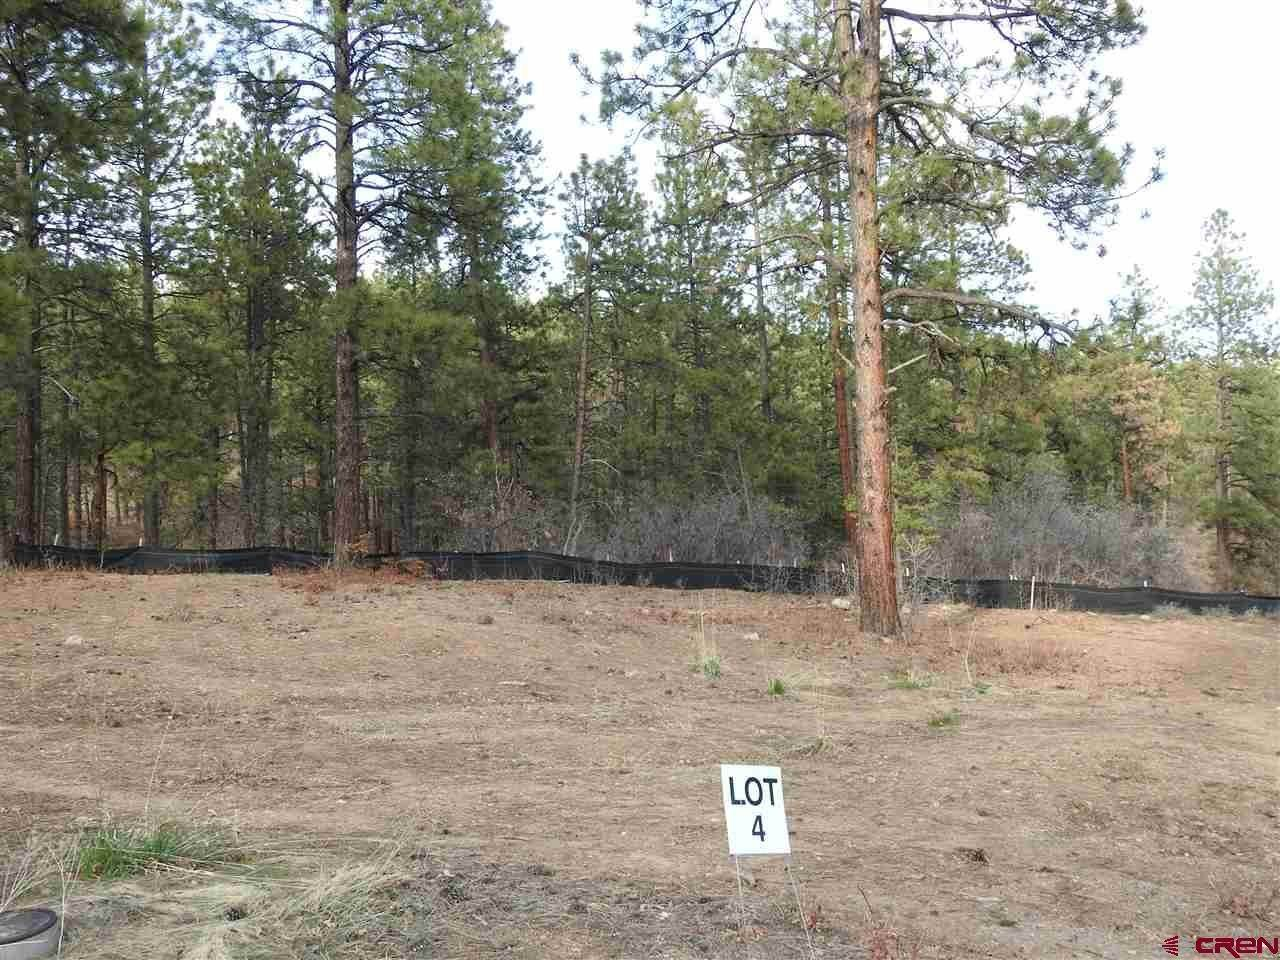 Residential at 53 Canyon Pines (Lot 4) Place Durango, Colorado 81301 United States